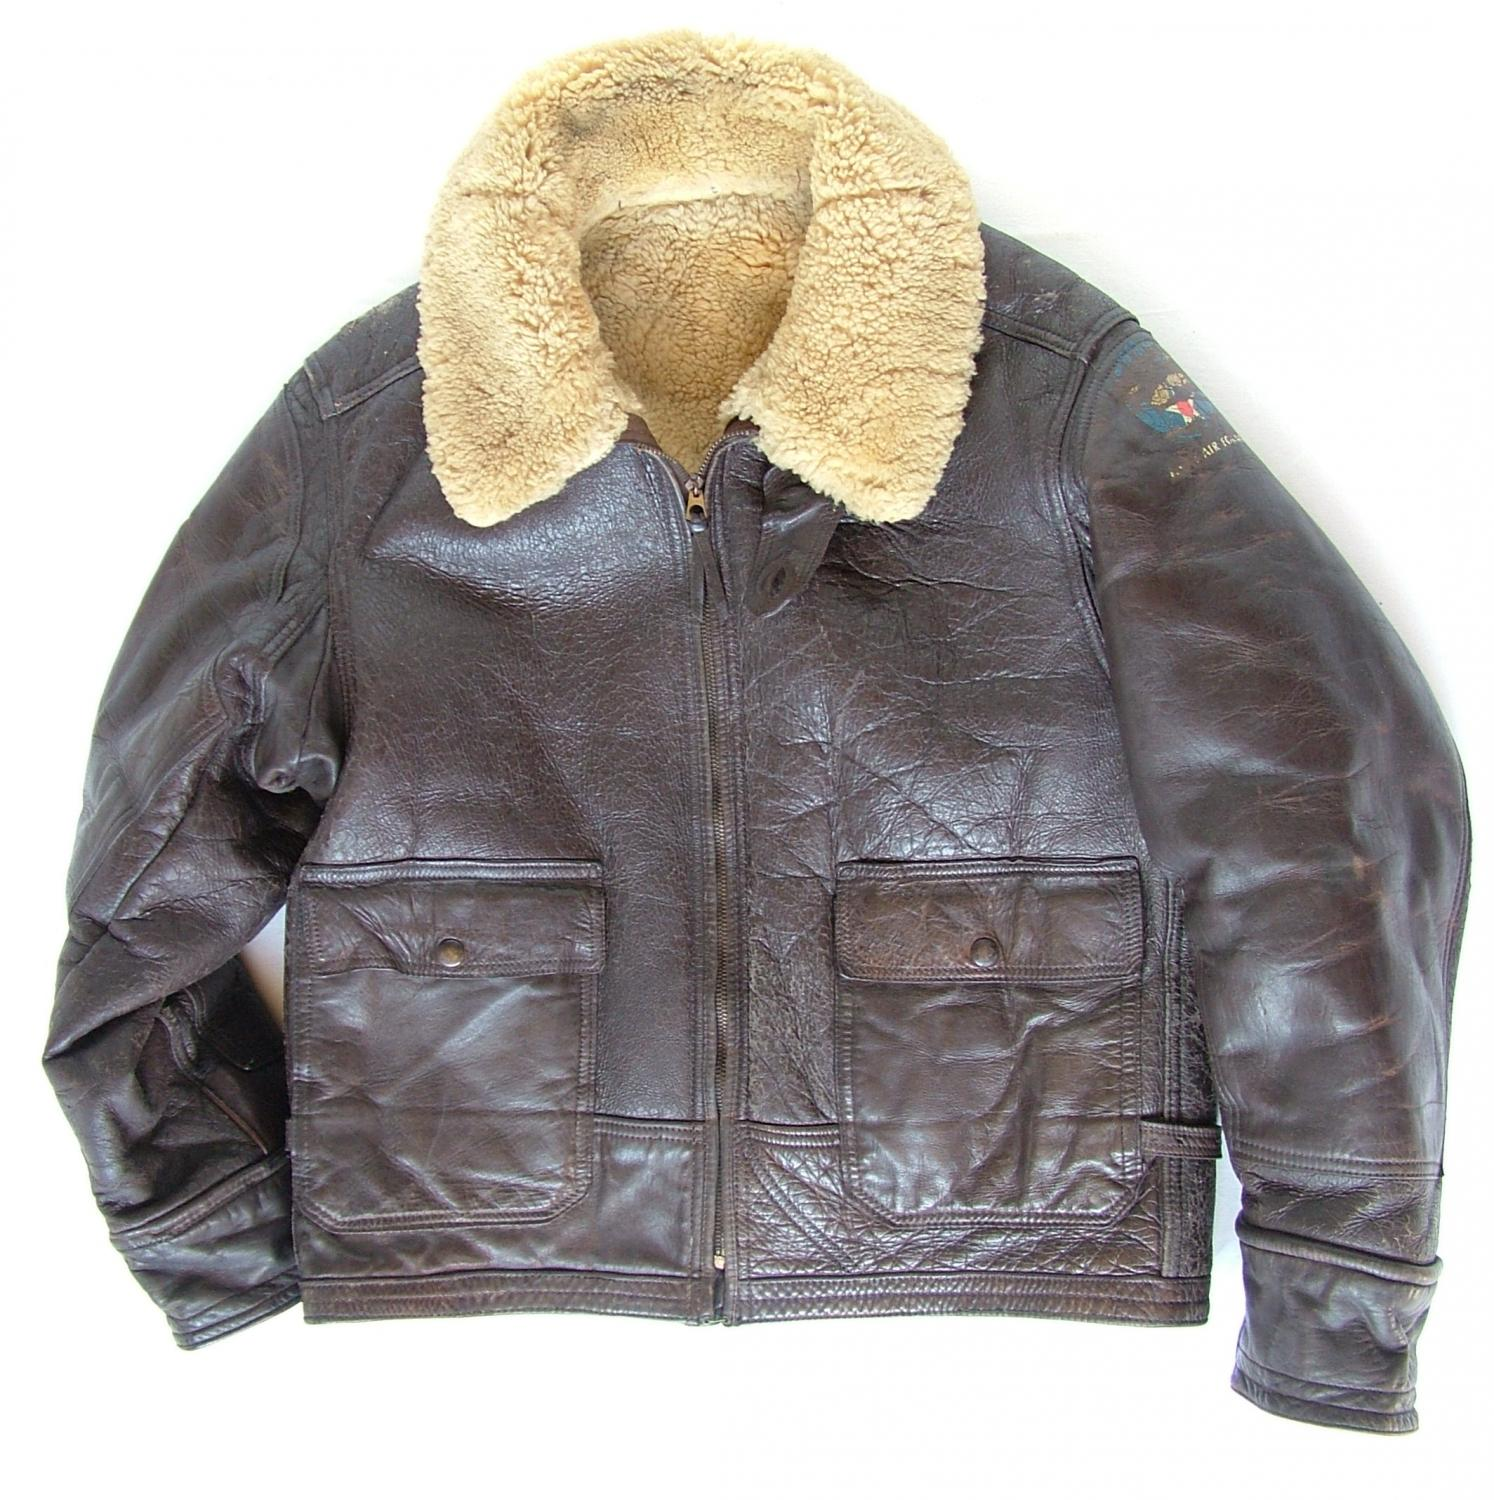 USAAF AN-J-4 Flying Jacket